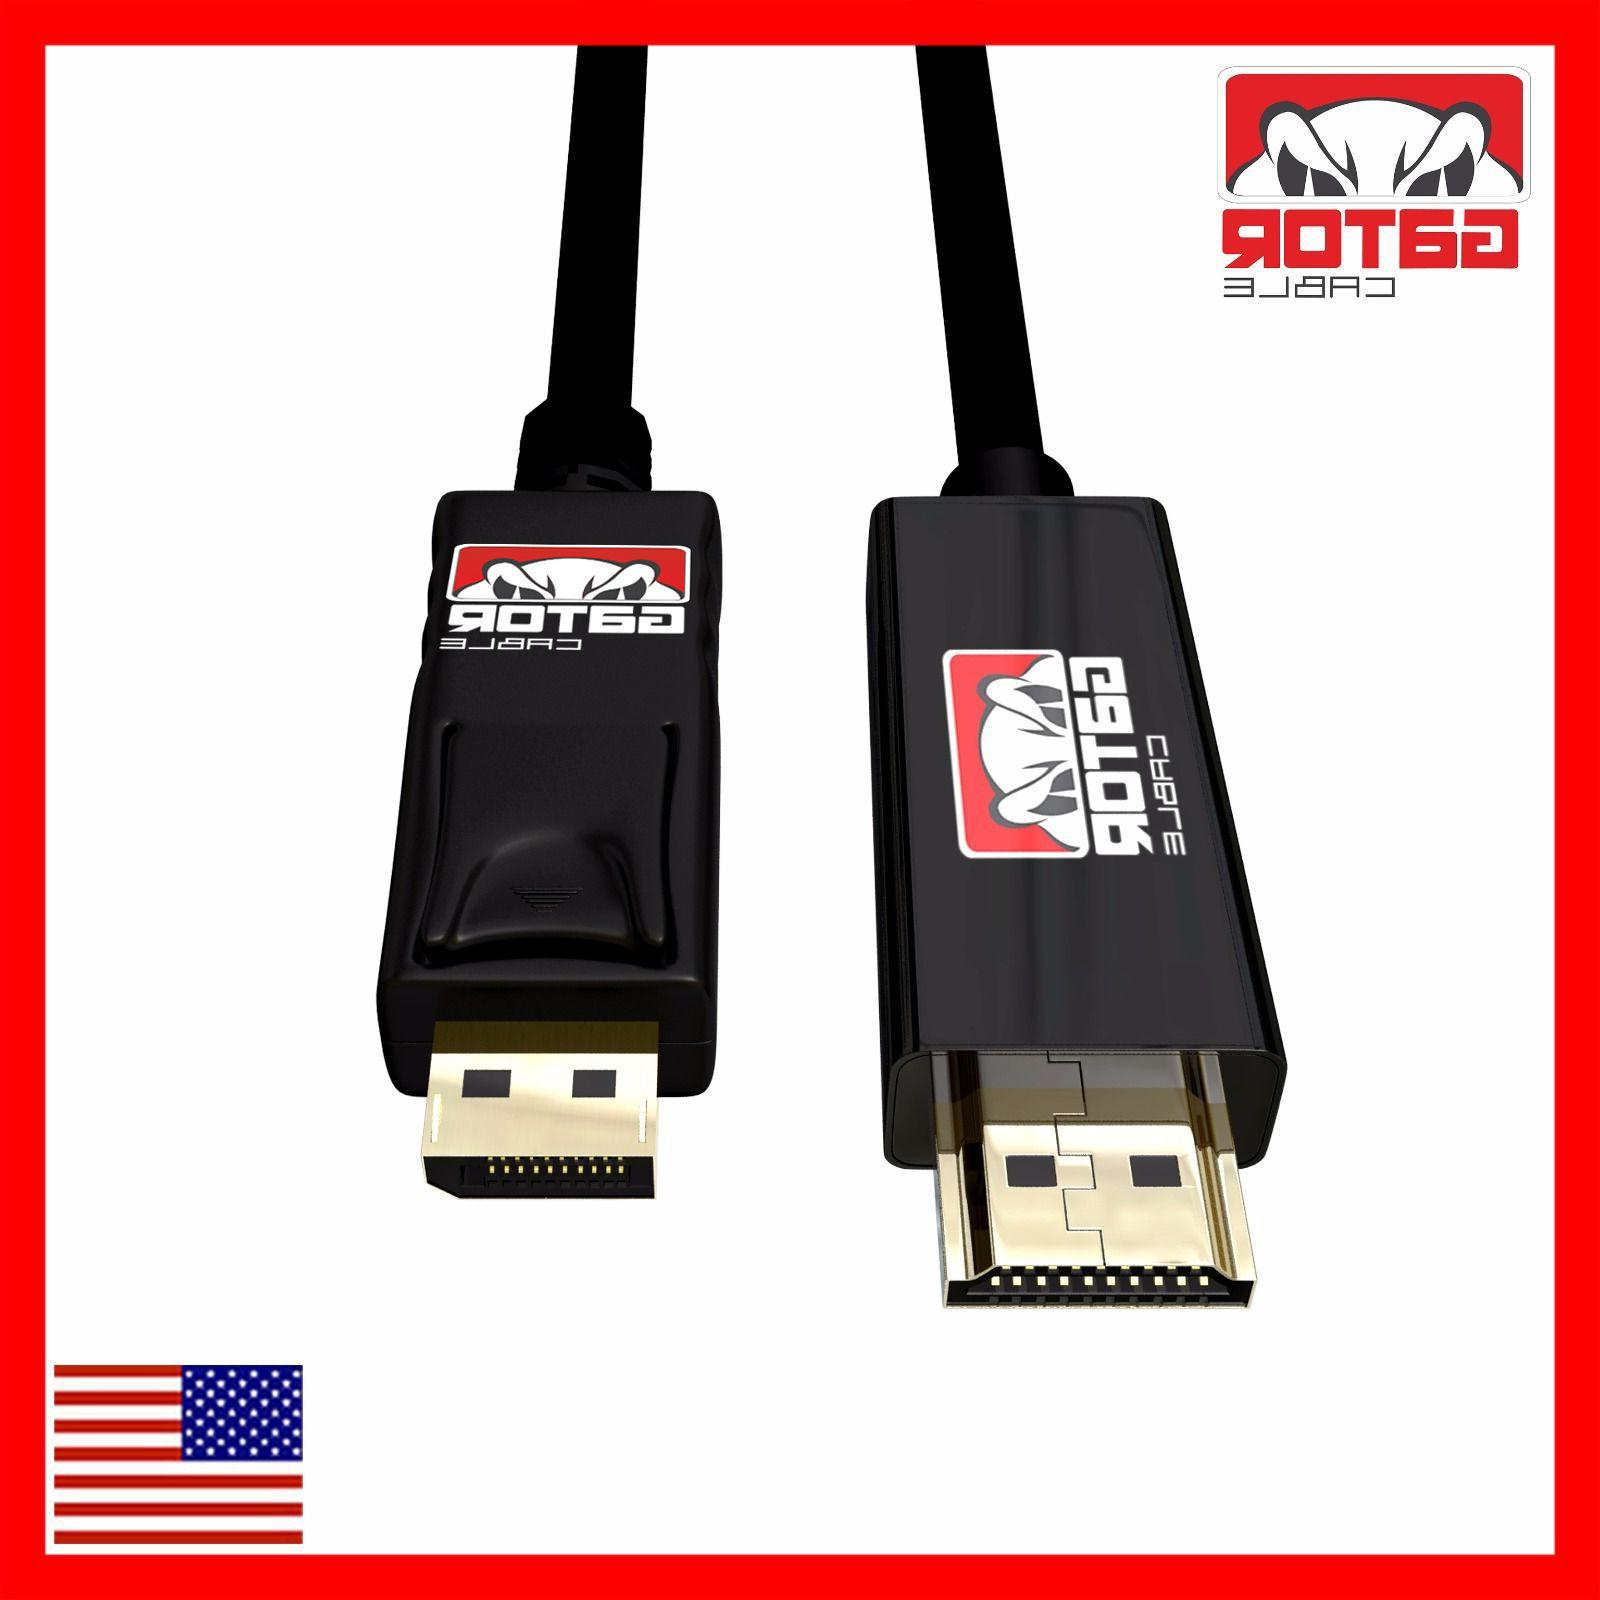 Display Port to HDMI Video PC